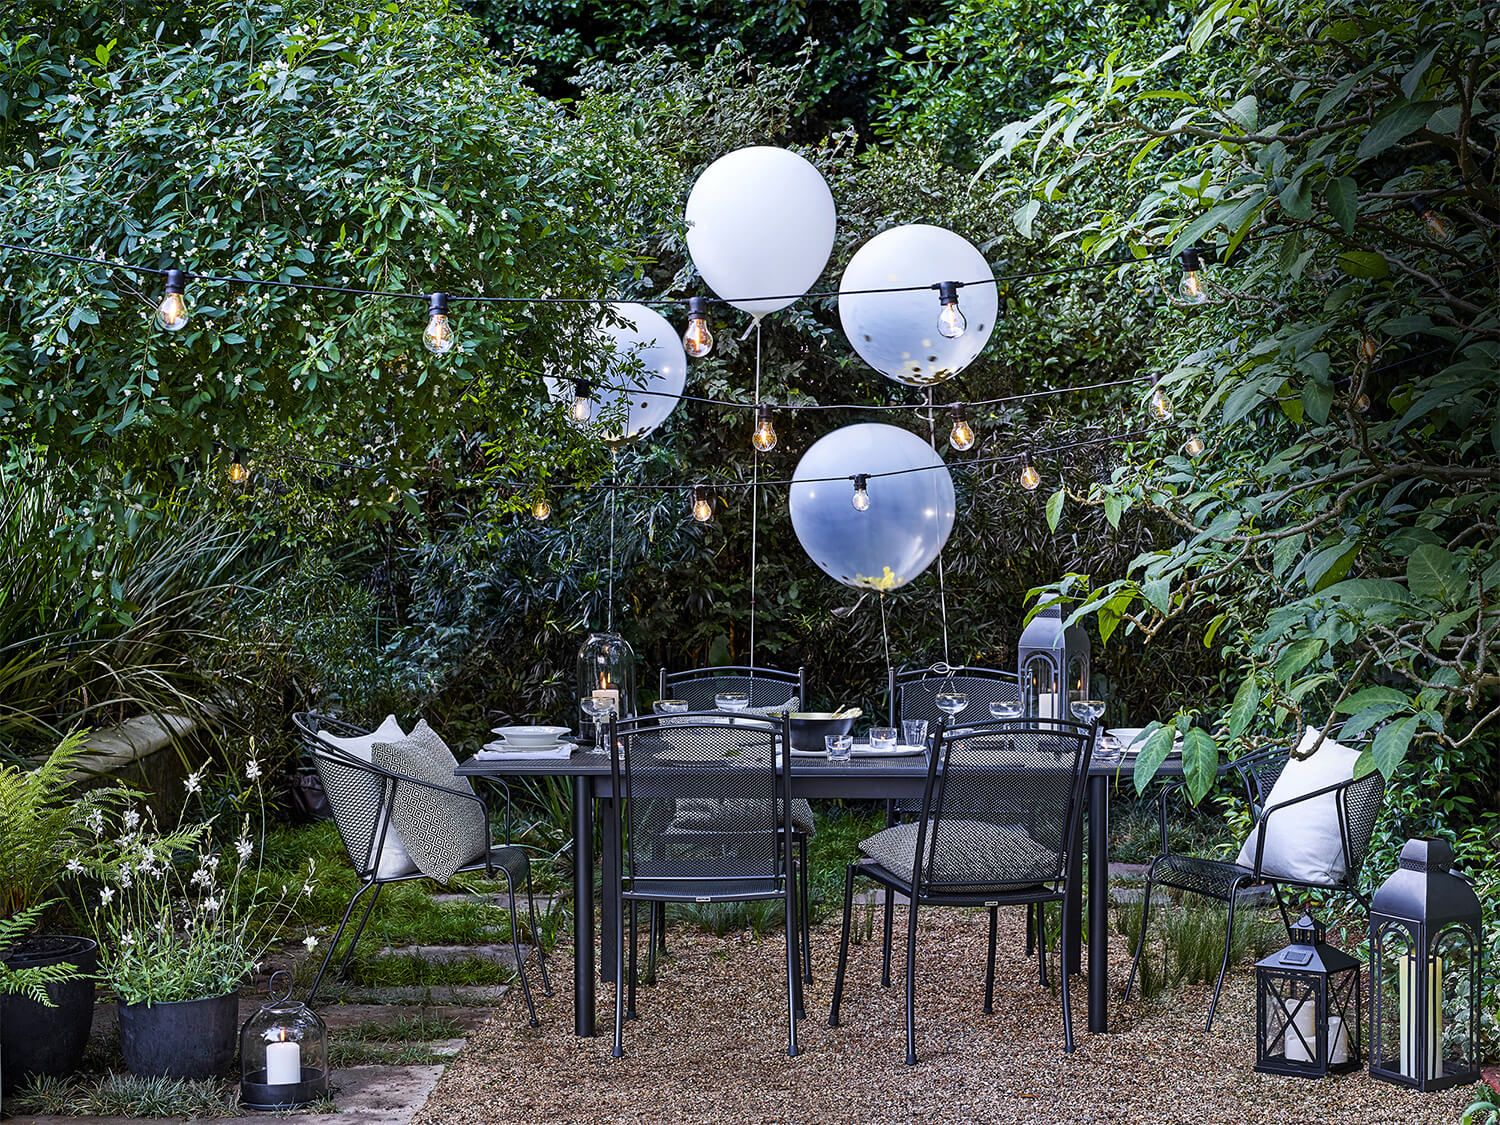 Outdoor table and chairs with giant balloons